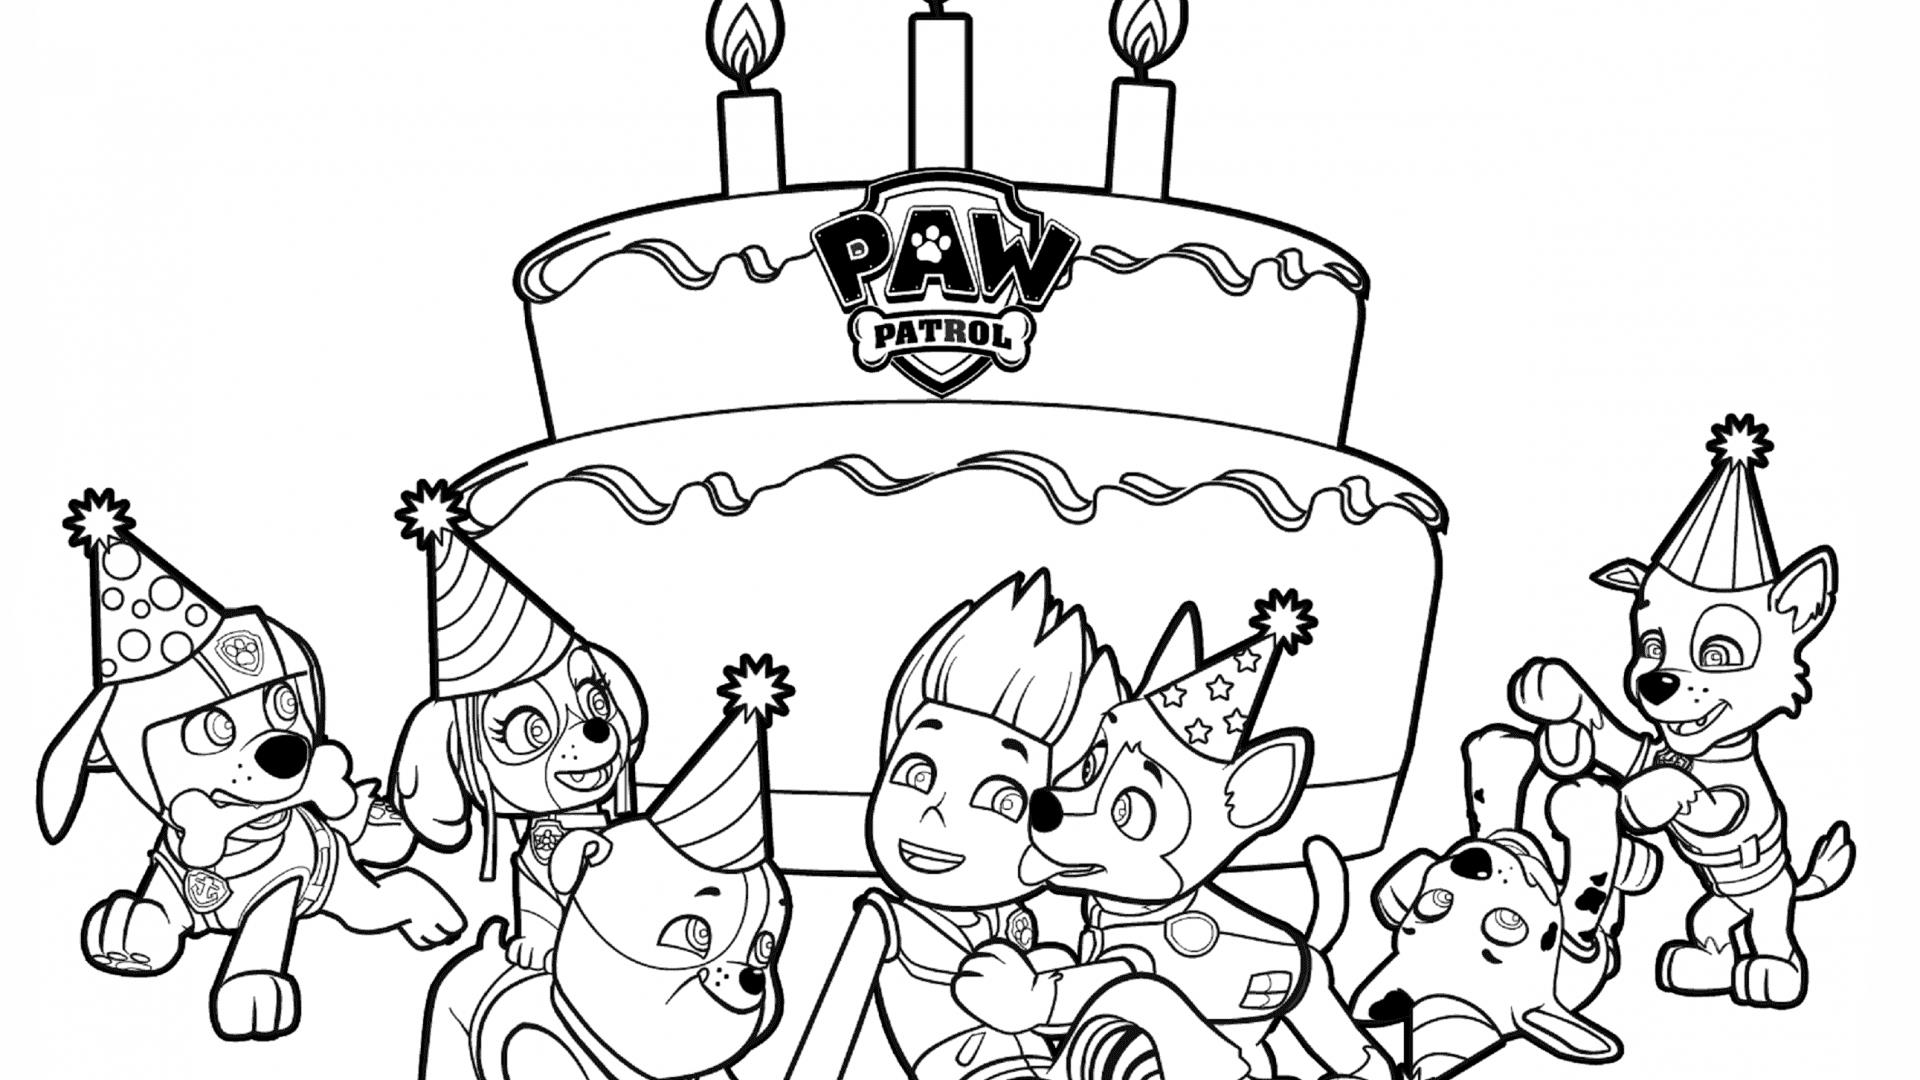 birthday coloring pages to print ; ryders-birthday-coloring-page-free-printable-1920x1080